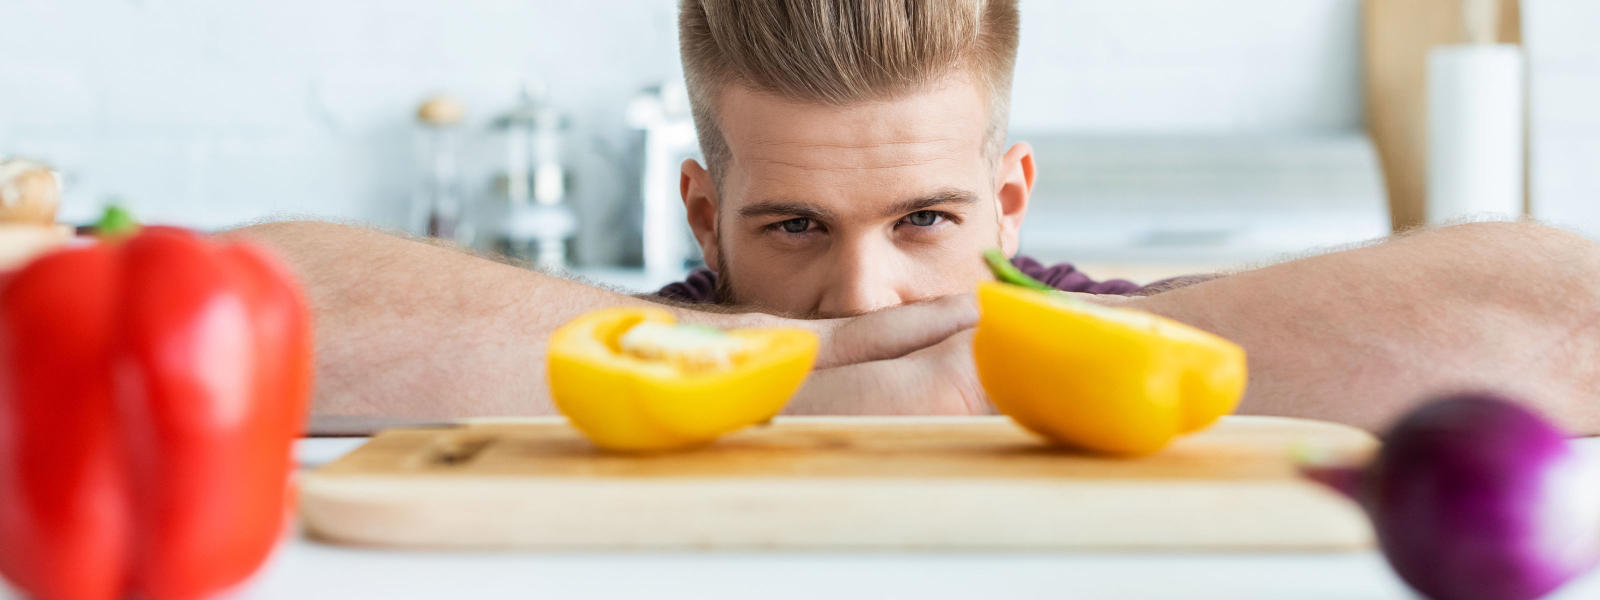 Photo of male person looking at halves of yellow bell pepper